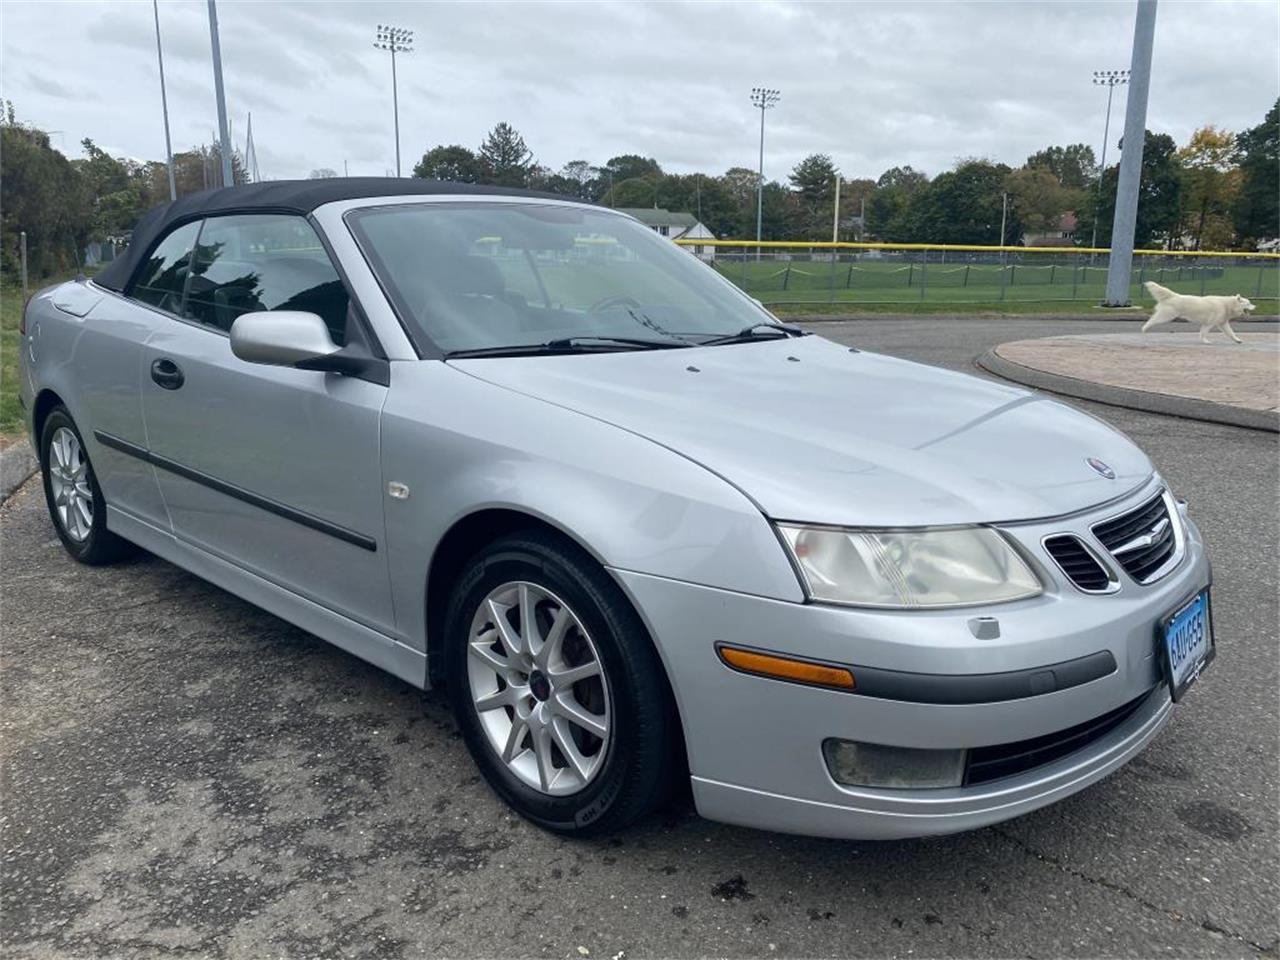 2004 Saab 9-3 (CC-1414519) for sale in Milford City, Connecticut